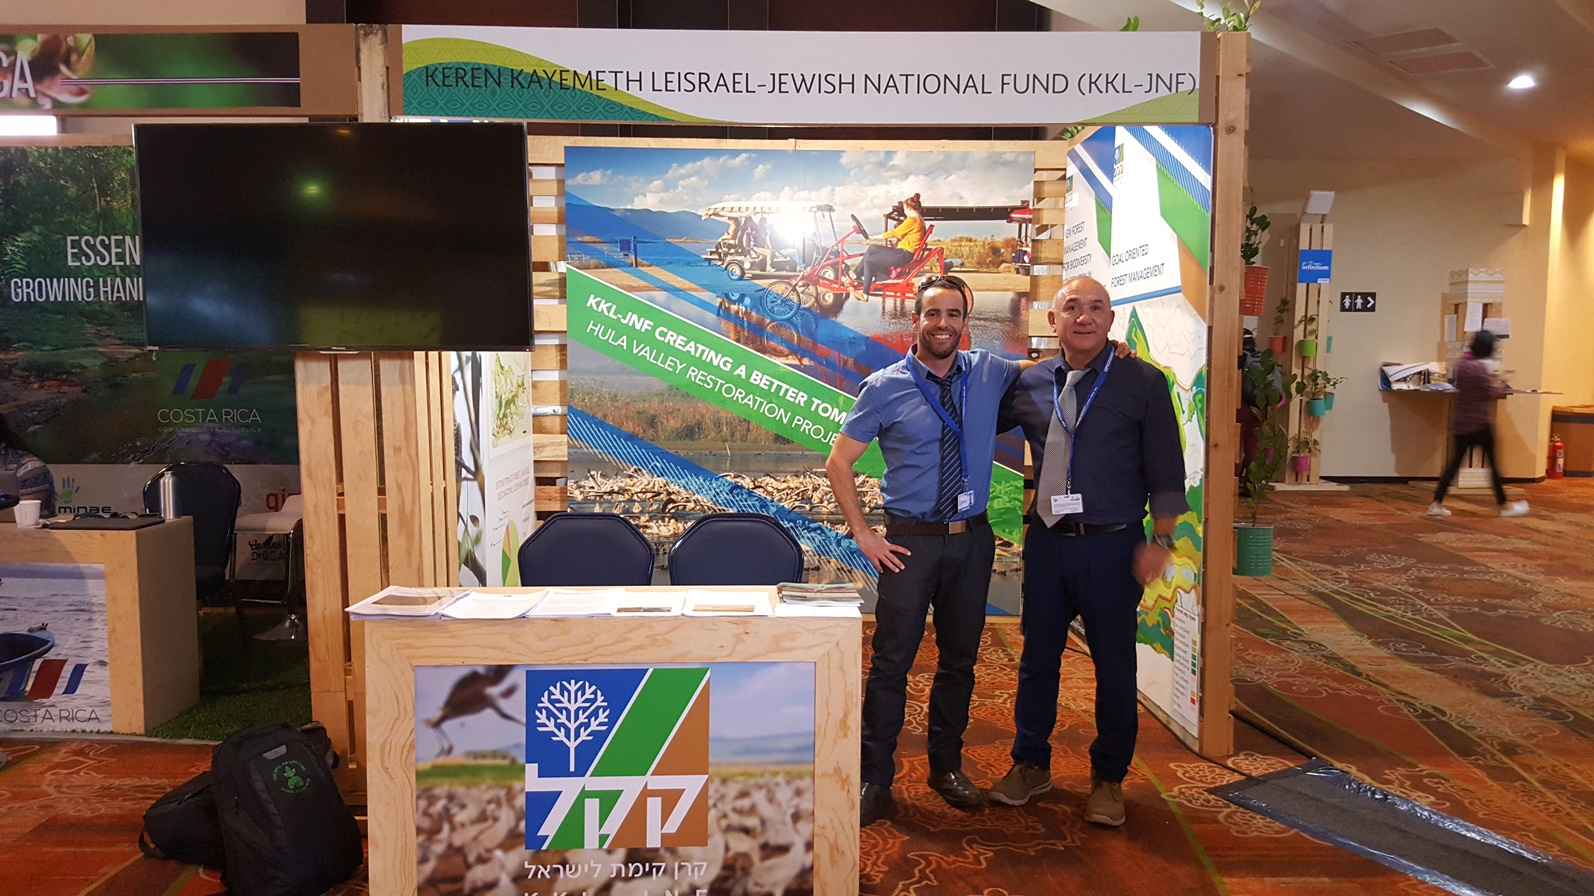 KKL-JNF Hula Valley and Golan Heights Forester Efi Naim, left, and KKL-JNF Landscape Architect and Ecologist Yahel Porat at the UN Biodiversity Conference in Cancun, Mexico, in December 2016. Photo: courtesy